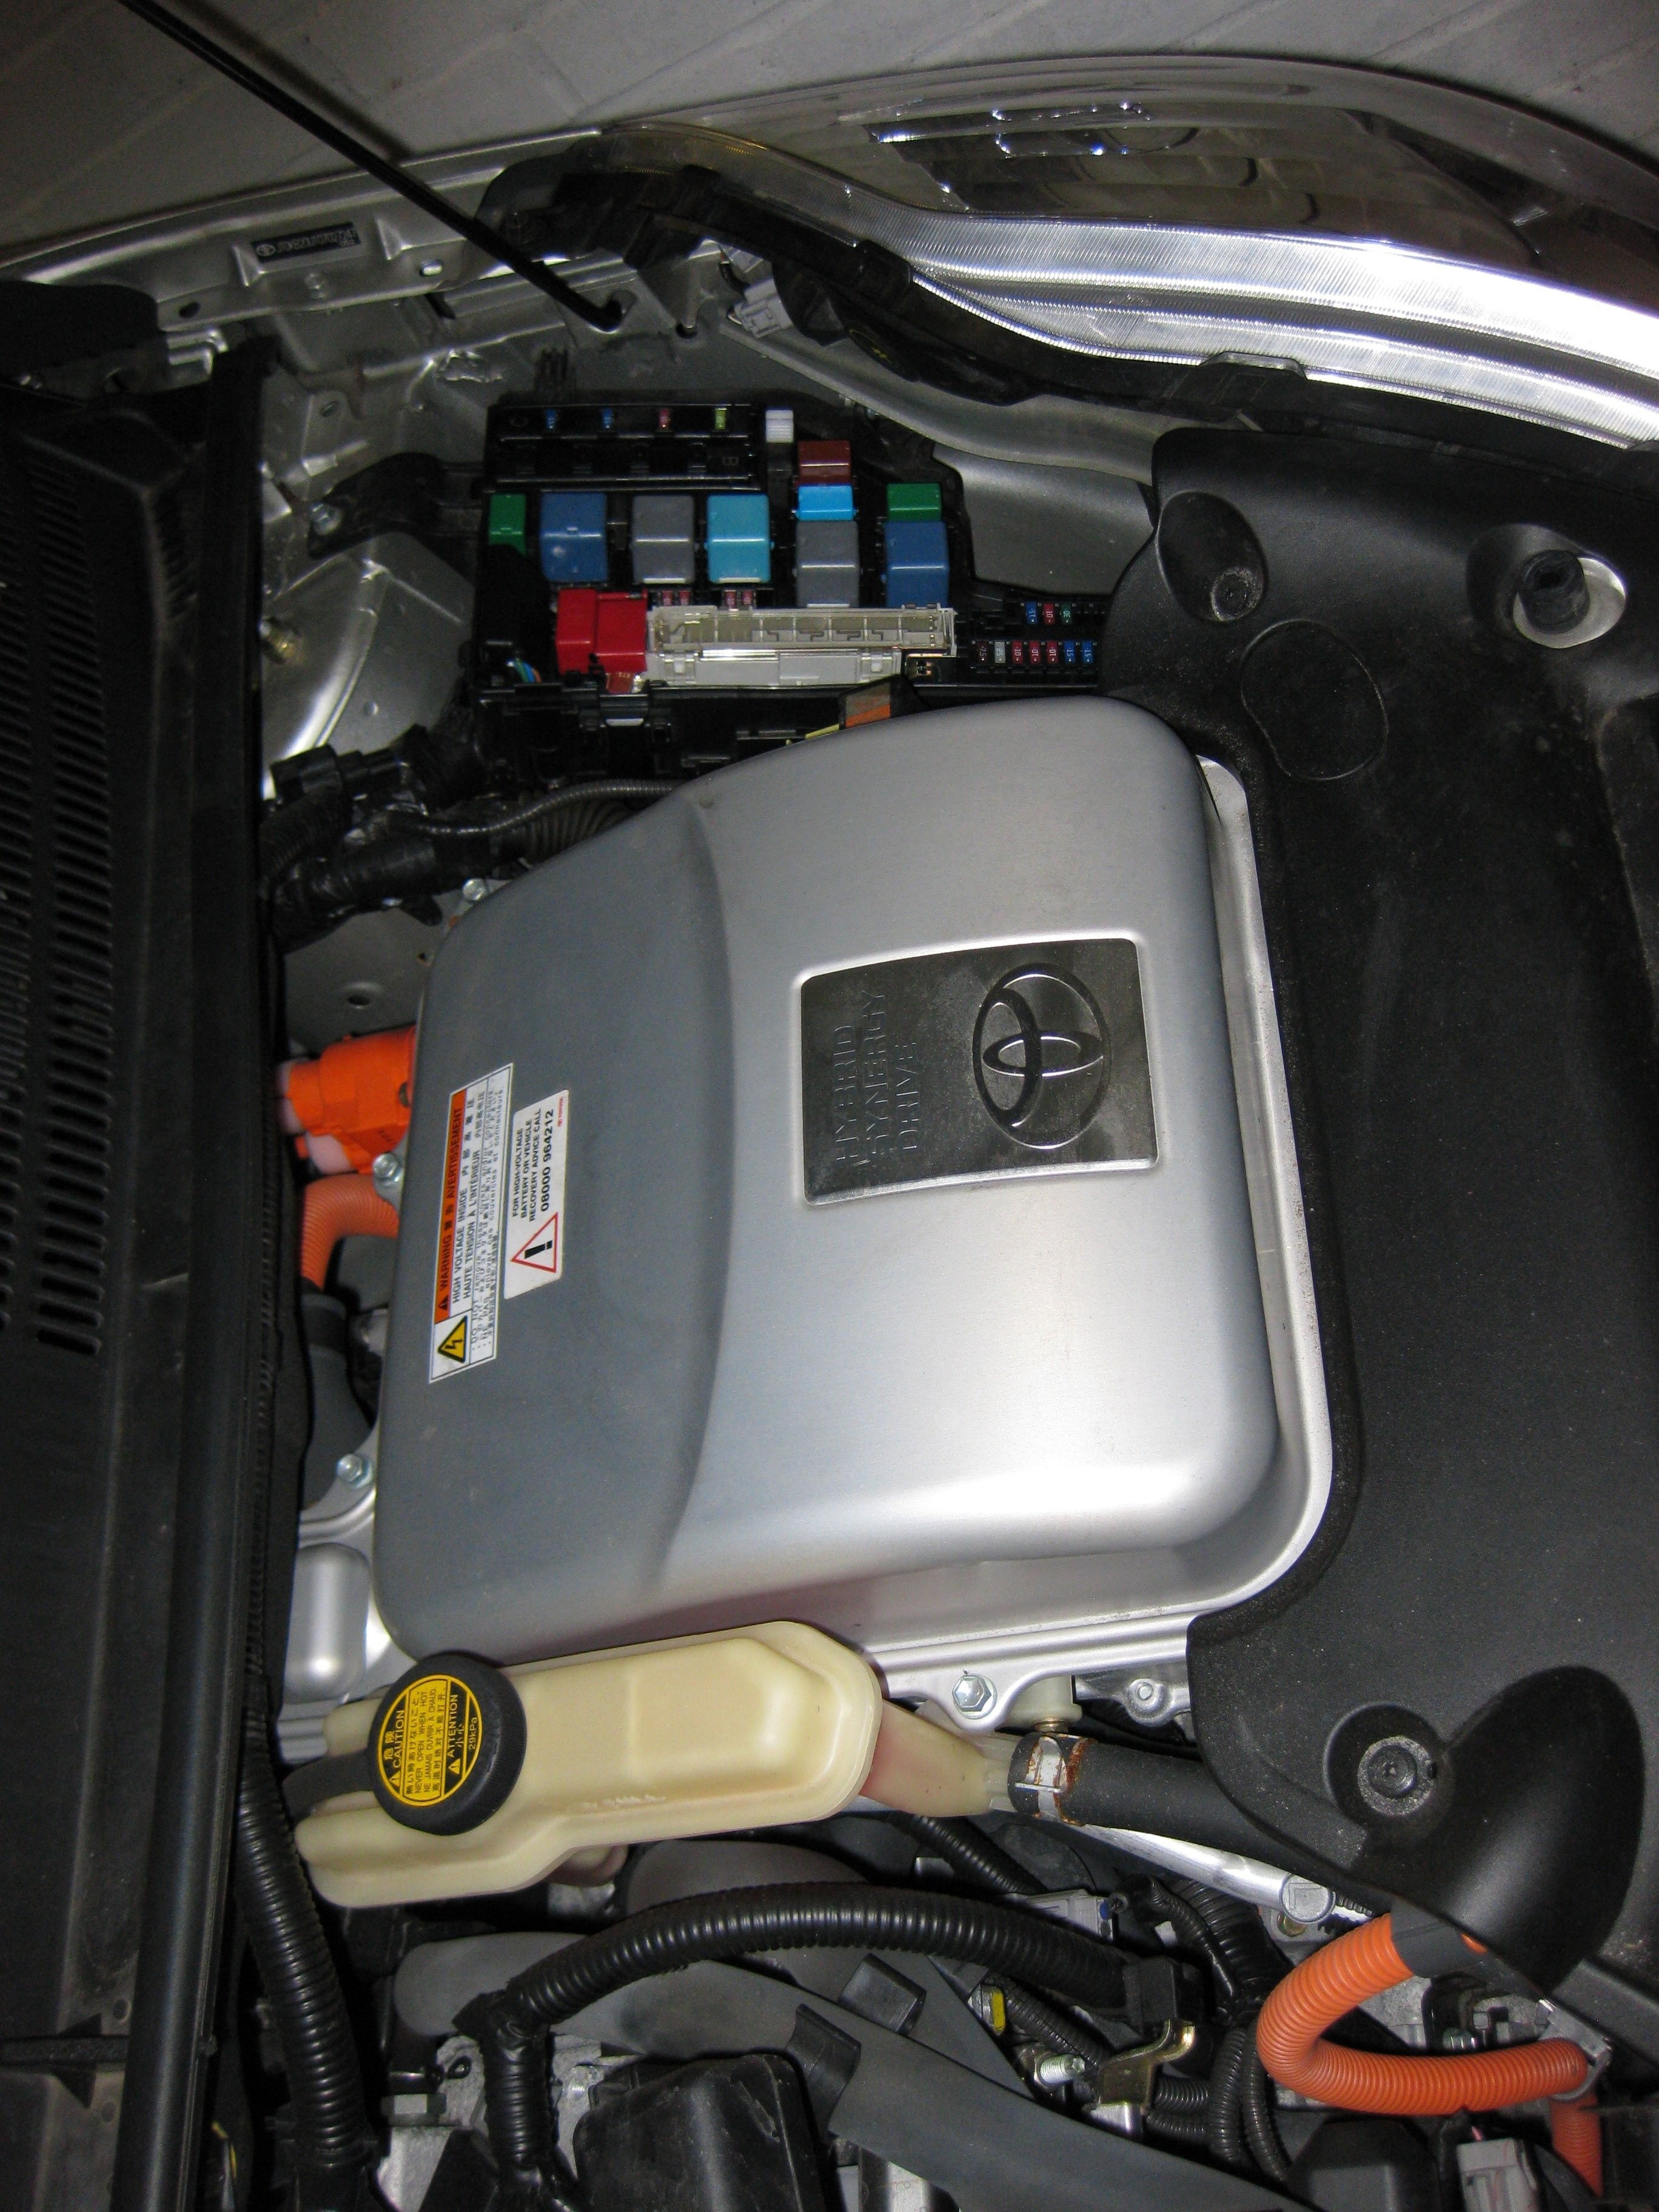 Prius Engine Diagram 2010 2015 Toyota Air Filter File Fusebox Location Wikimedia Mons Of